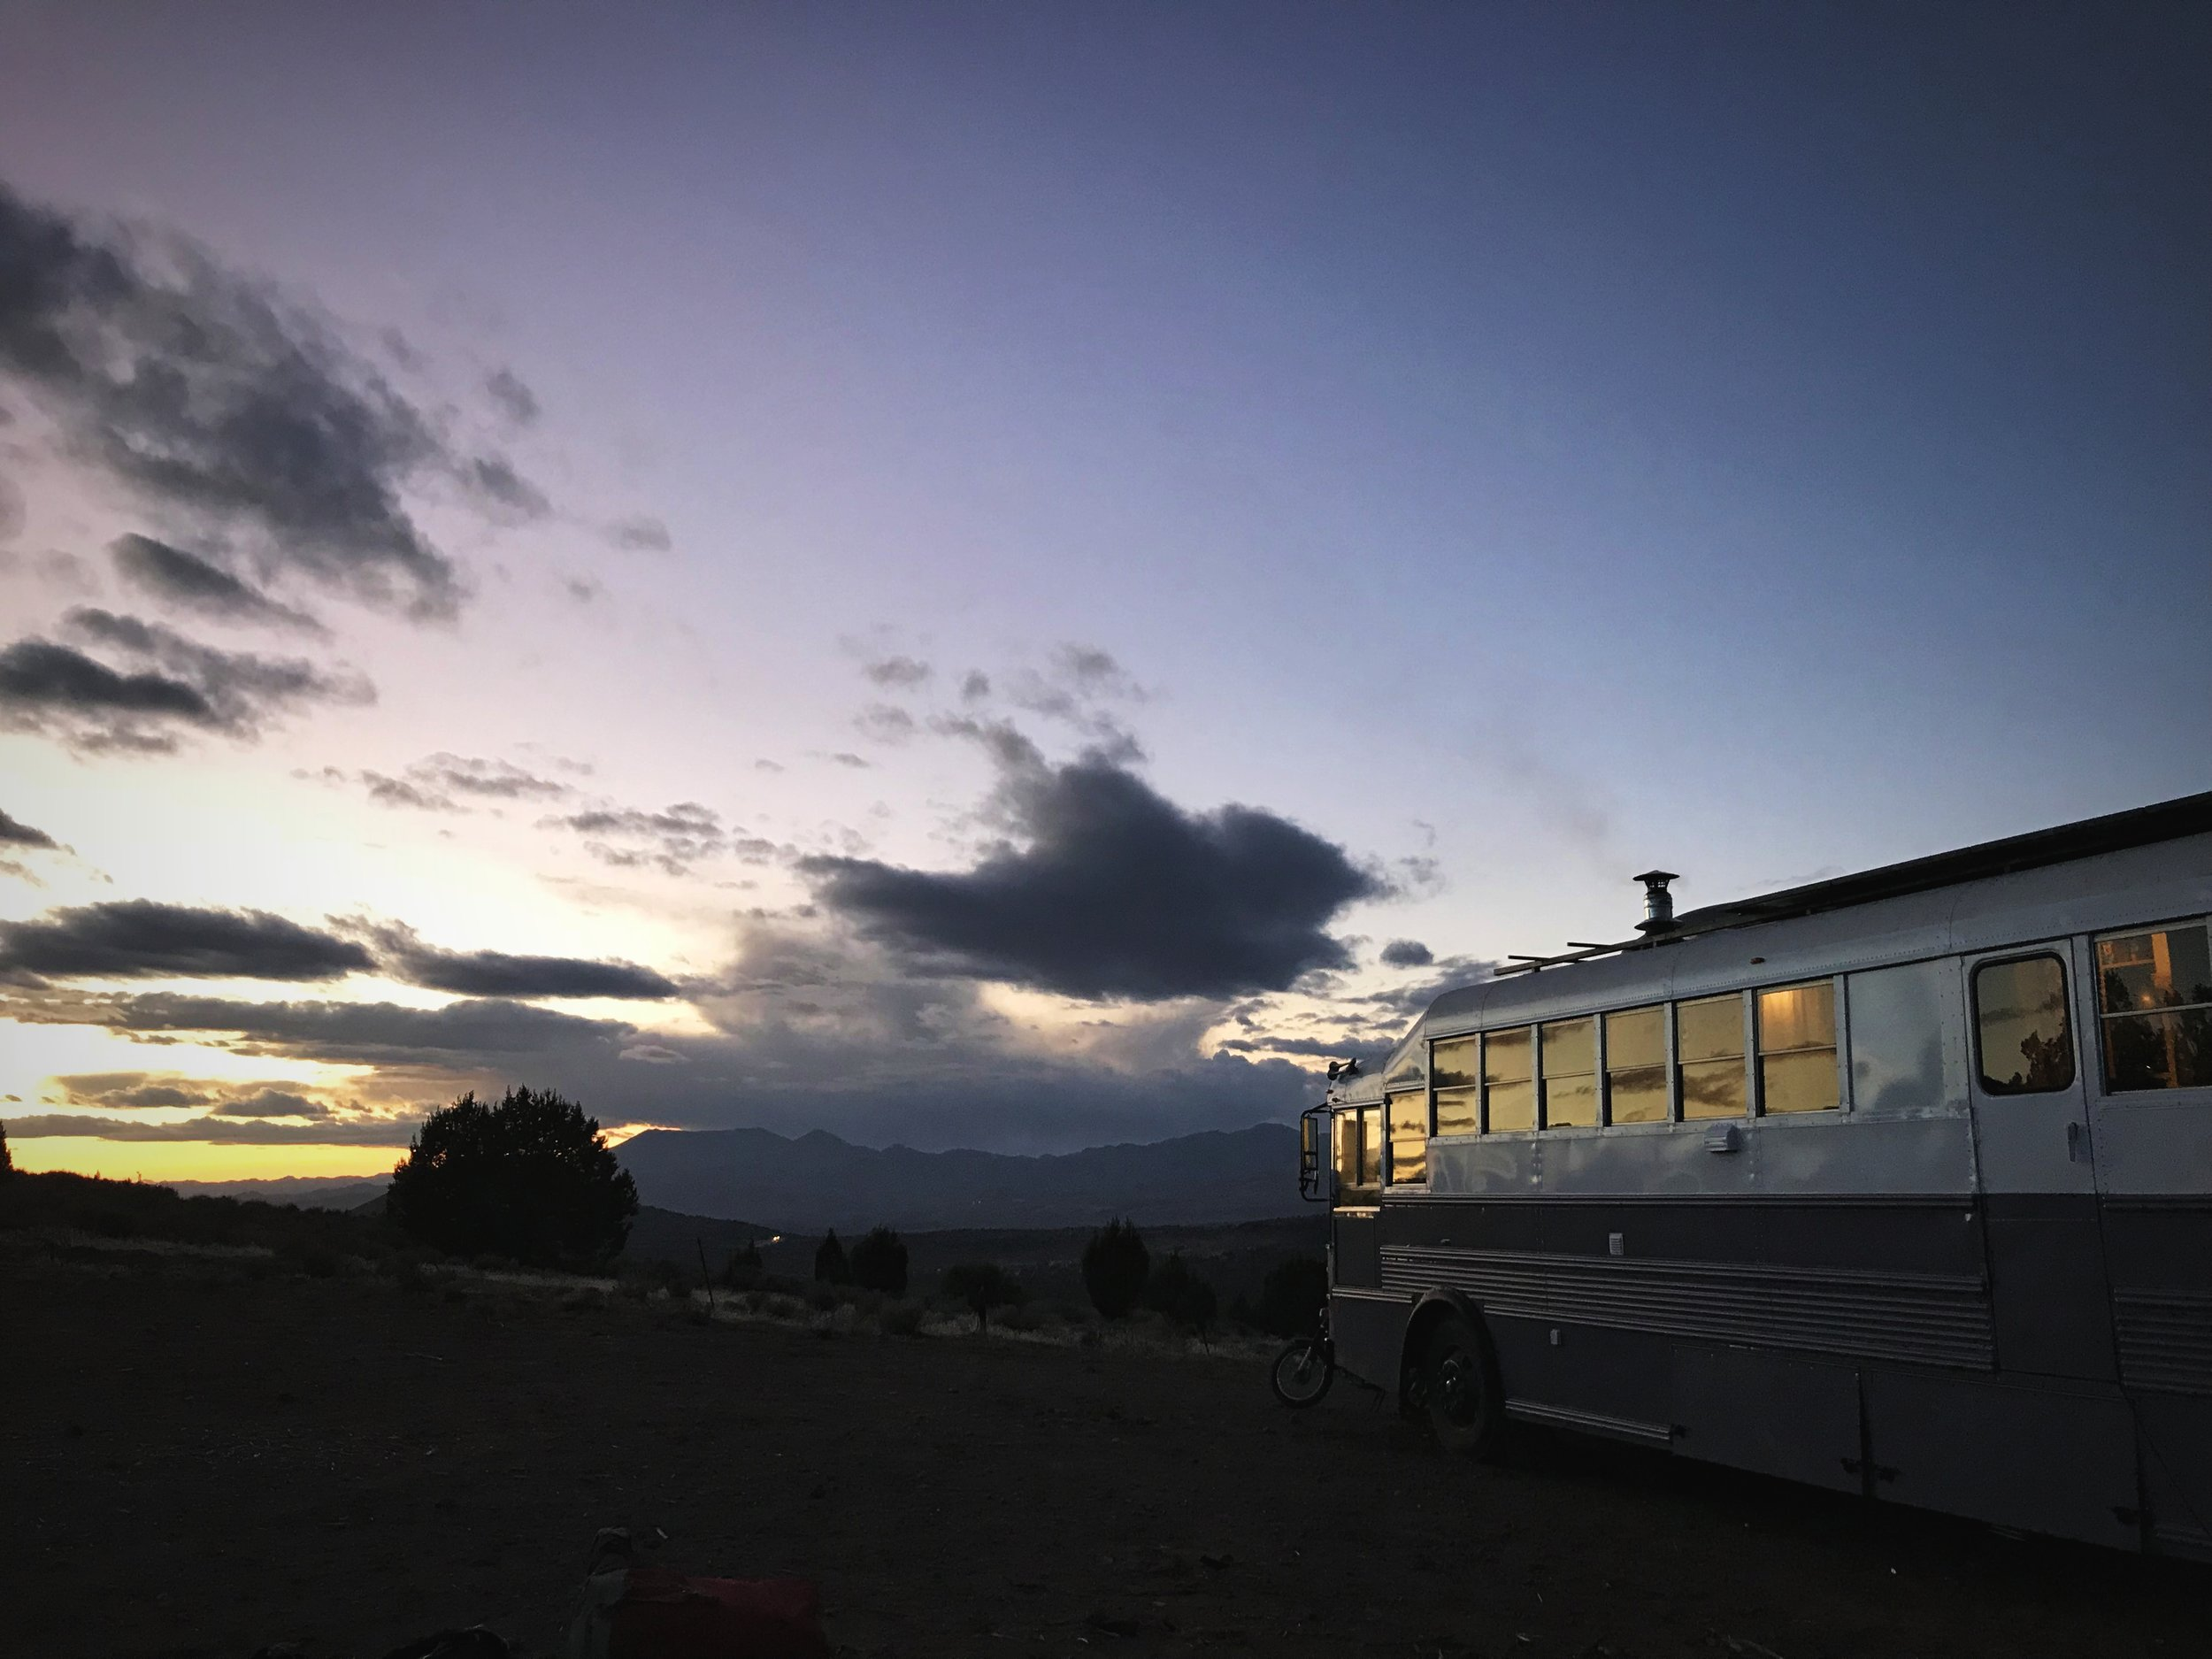 We spent a lovely Thanksgiving with a family who live in a bus.